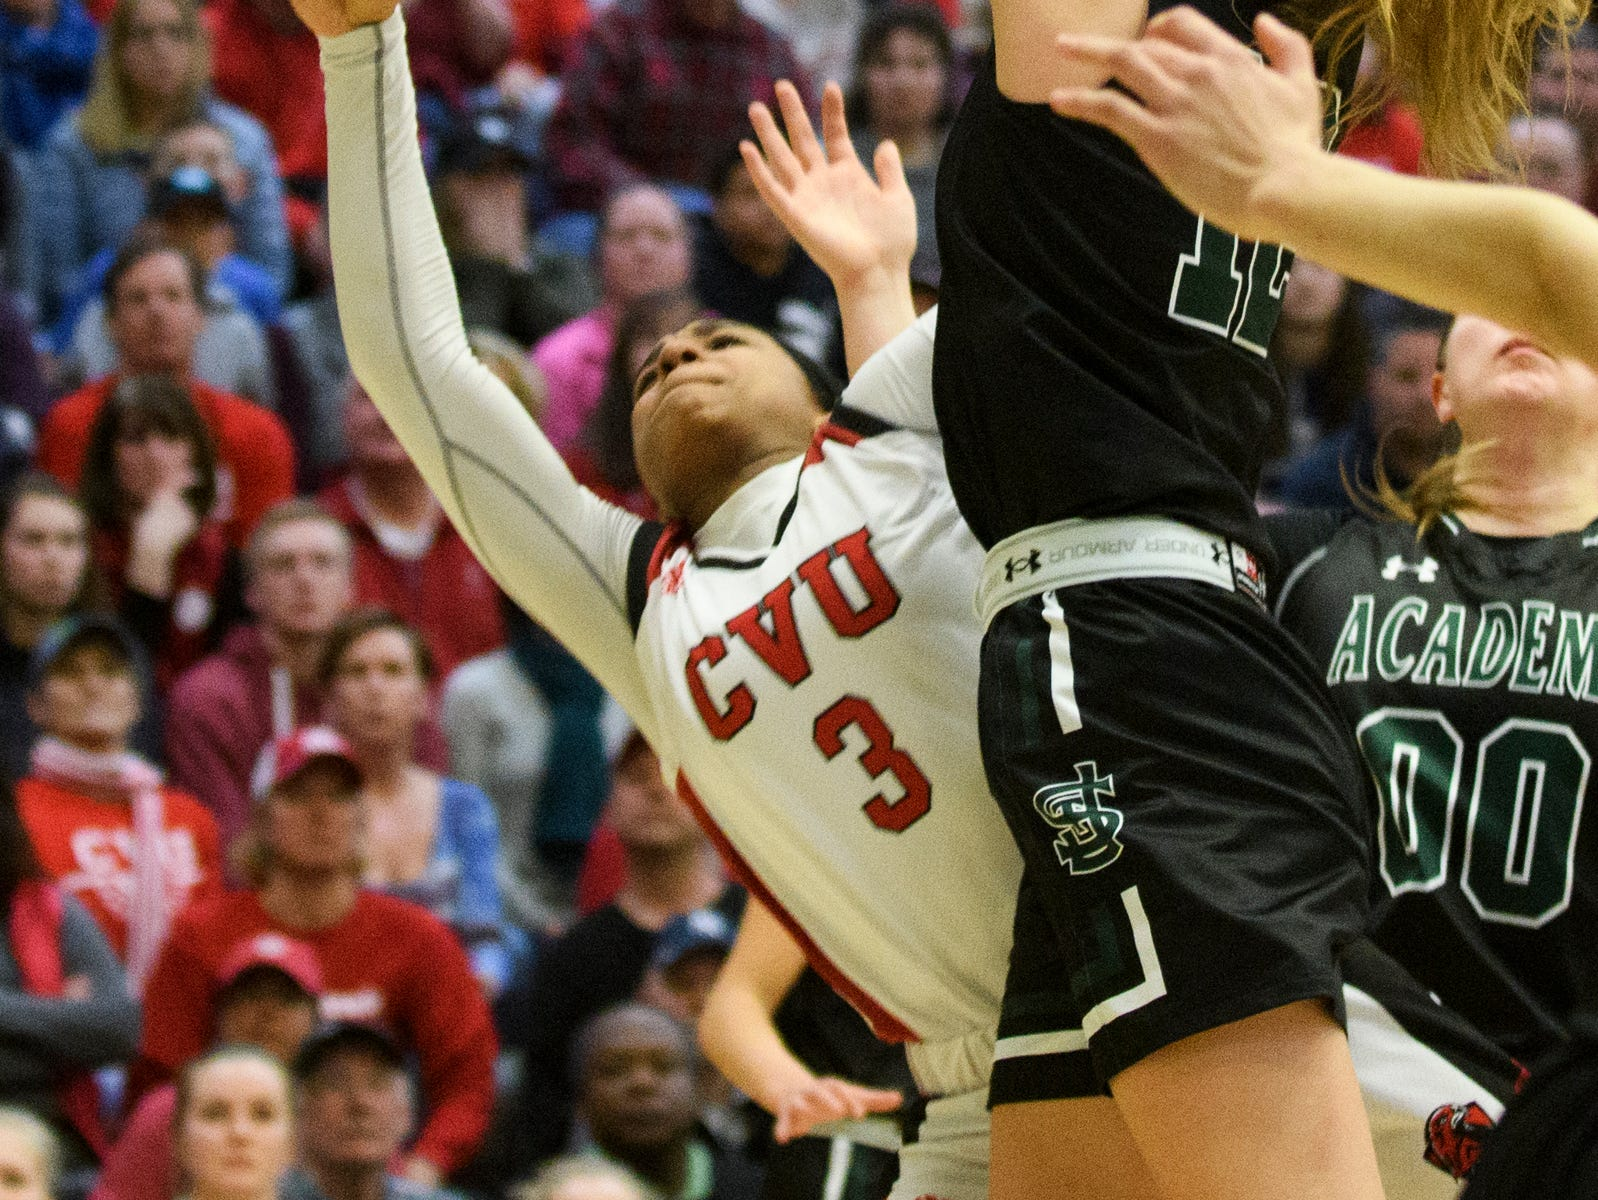 St. Johnsbury's Lara Rohkohl (12) blocks the shot by CVU's Mekkena Boyd (3) during the division I girls basketball championship basketball game between the St. Johnsbury Hilltoppers and the Champlain Valley Union Redhawks at Patrick Gym on Sunday afternoon March 10, 2019 in Burlington, Vermont.